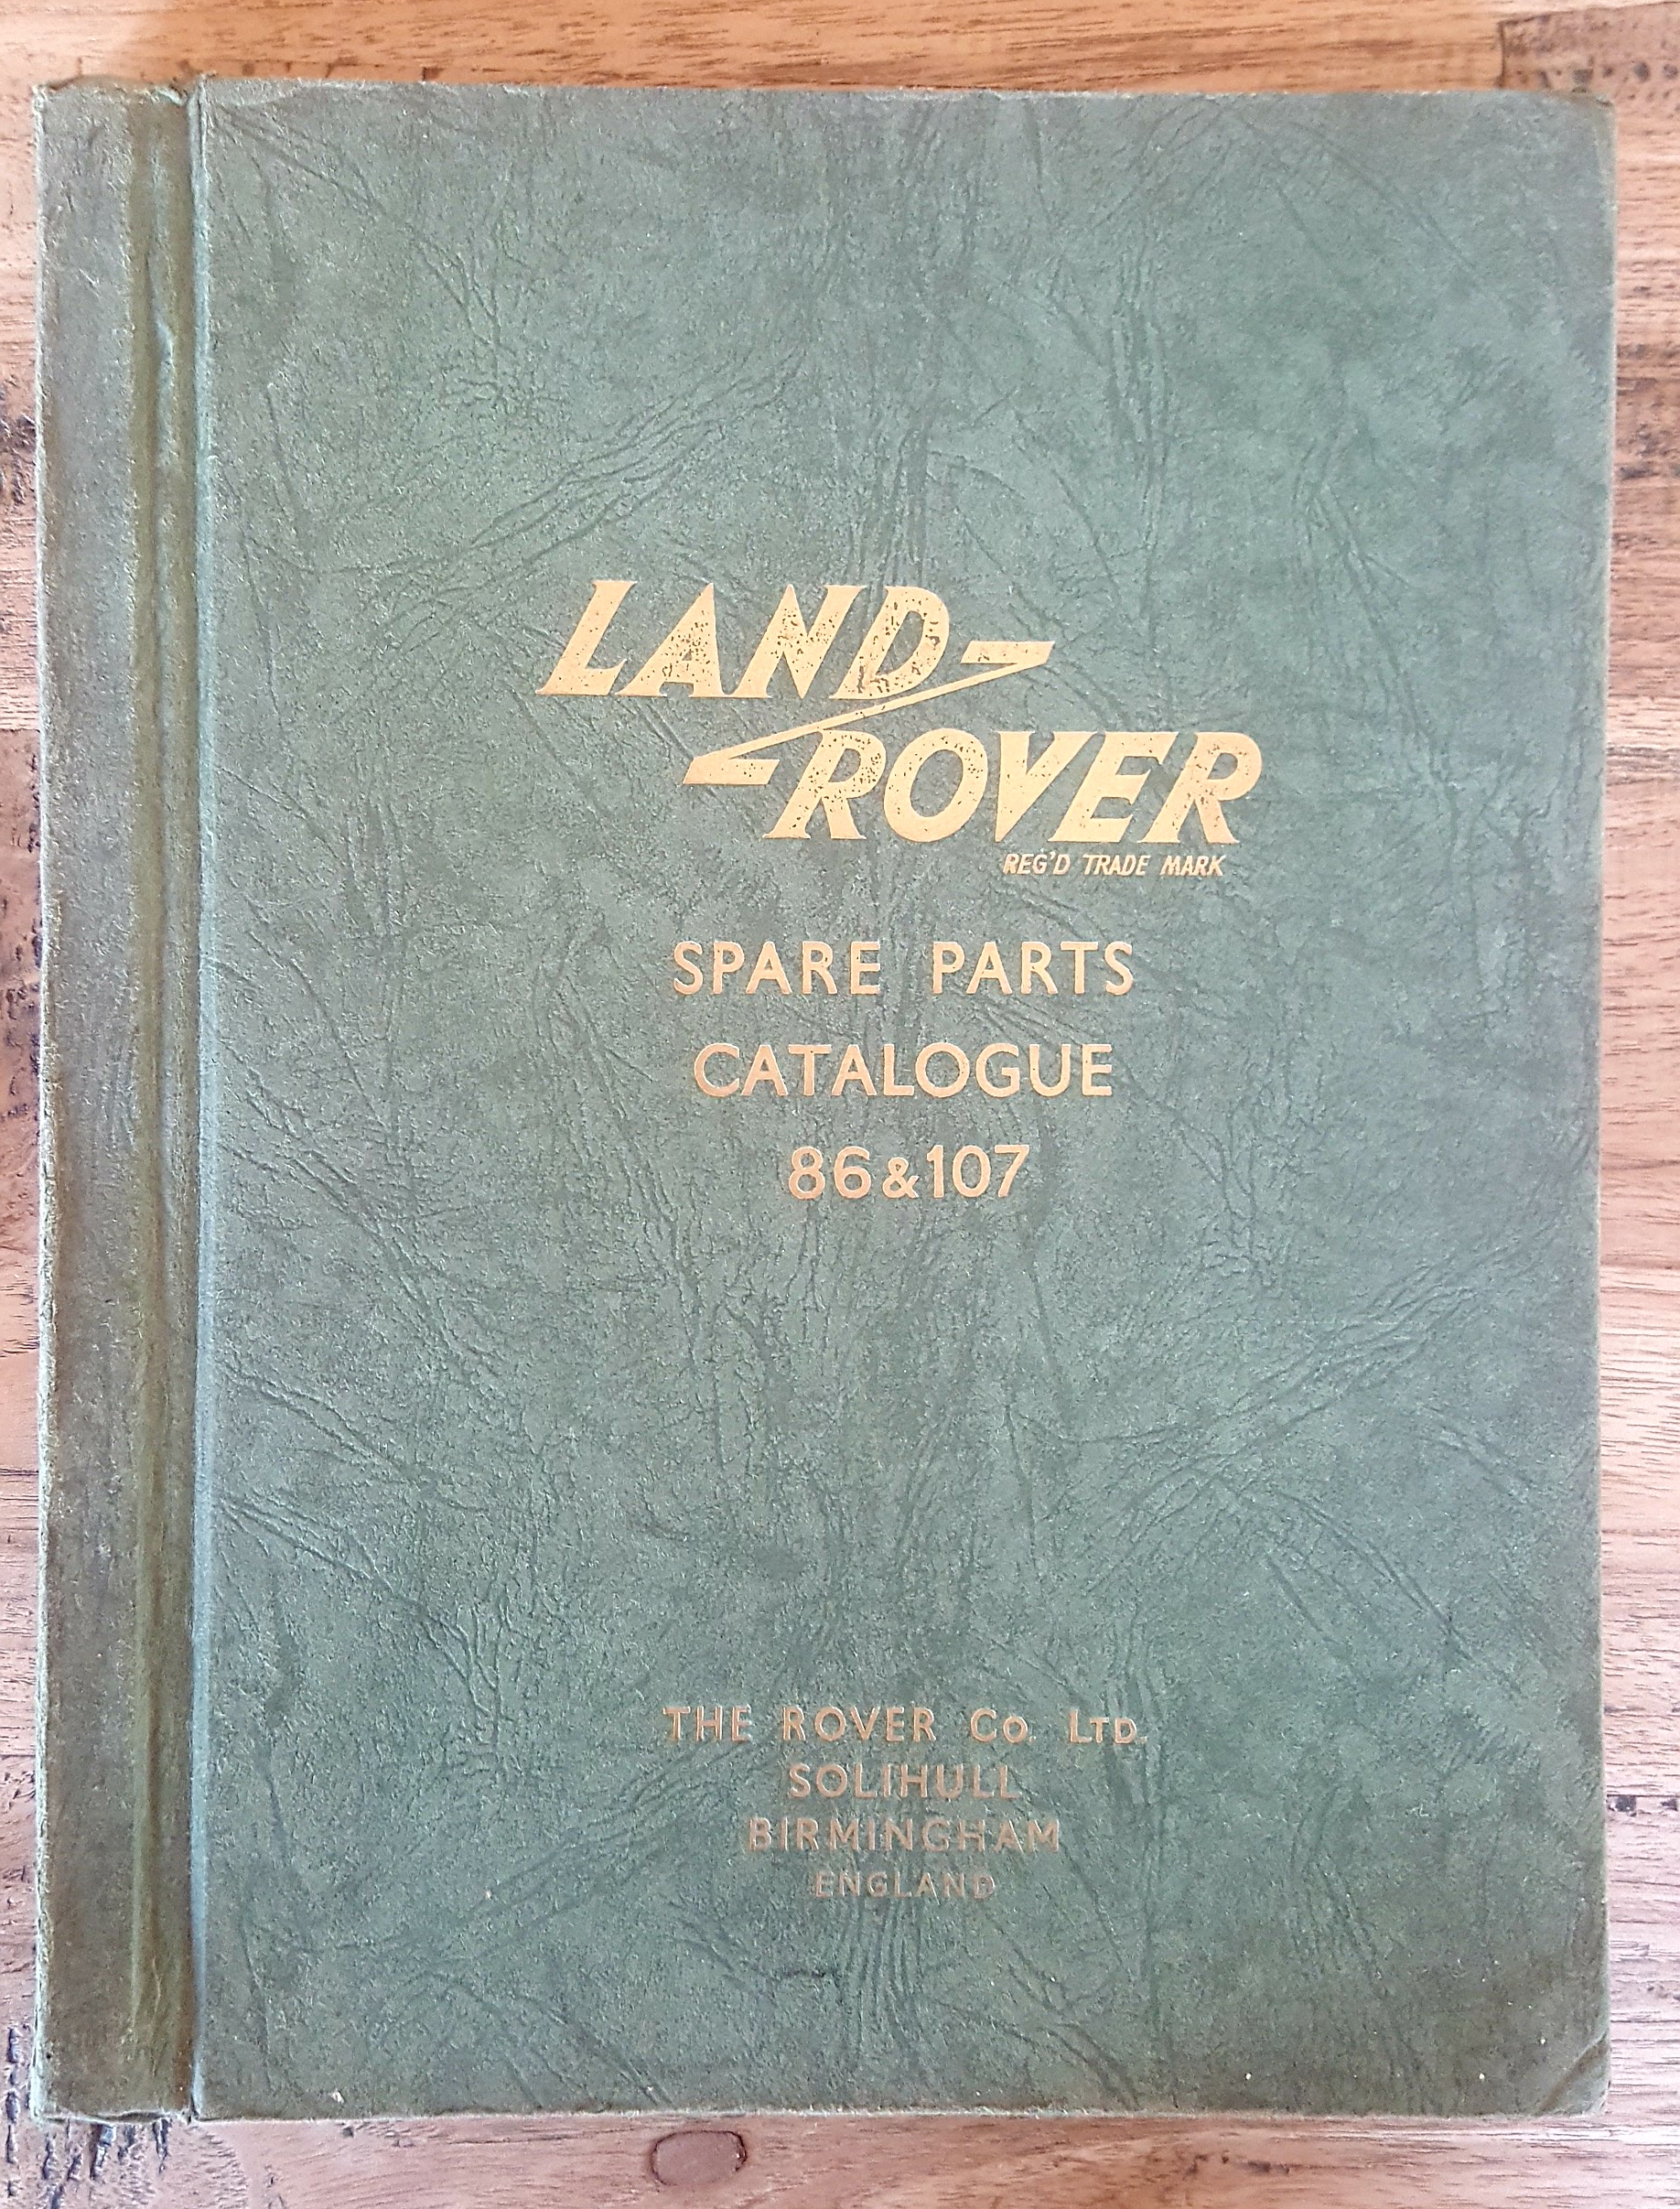 manuals fig res fog rover reference land diagram pre wiring here military landrover catalog user image the full download catalogues lightweight parts